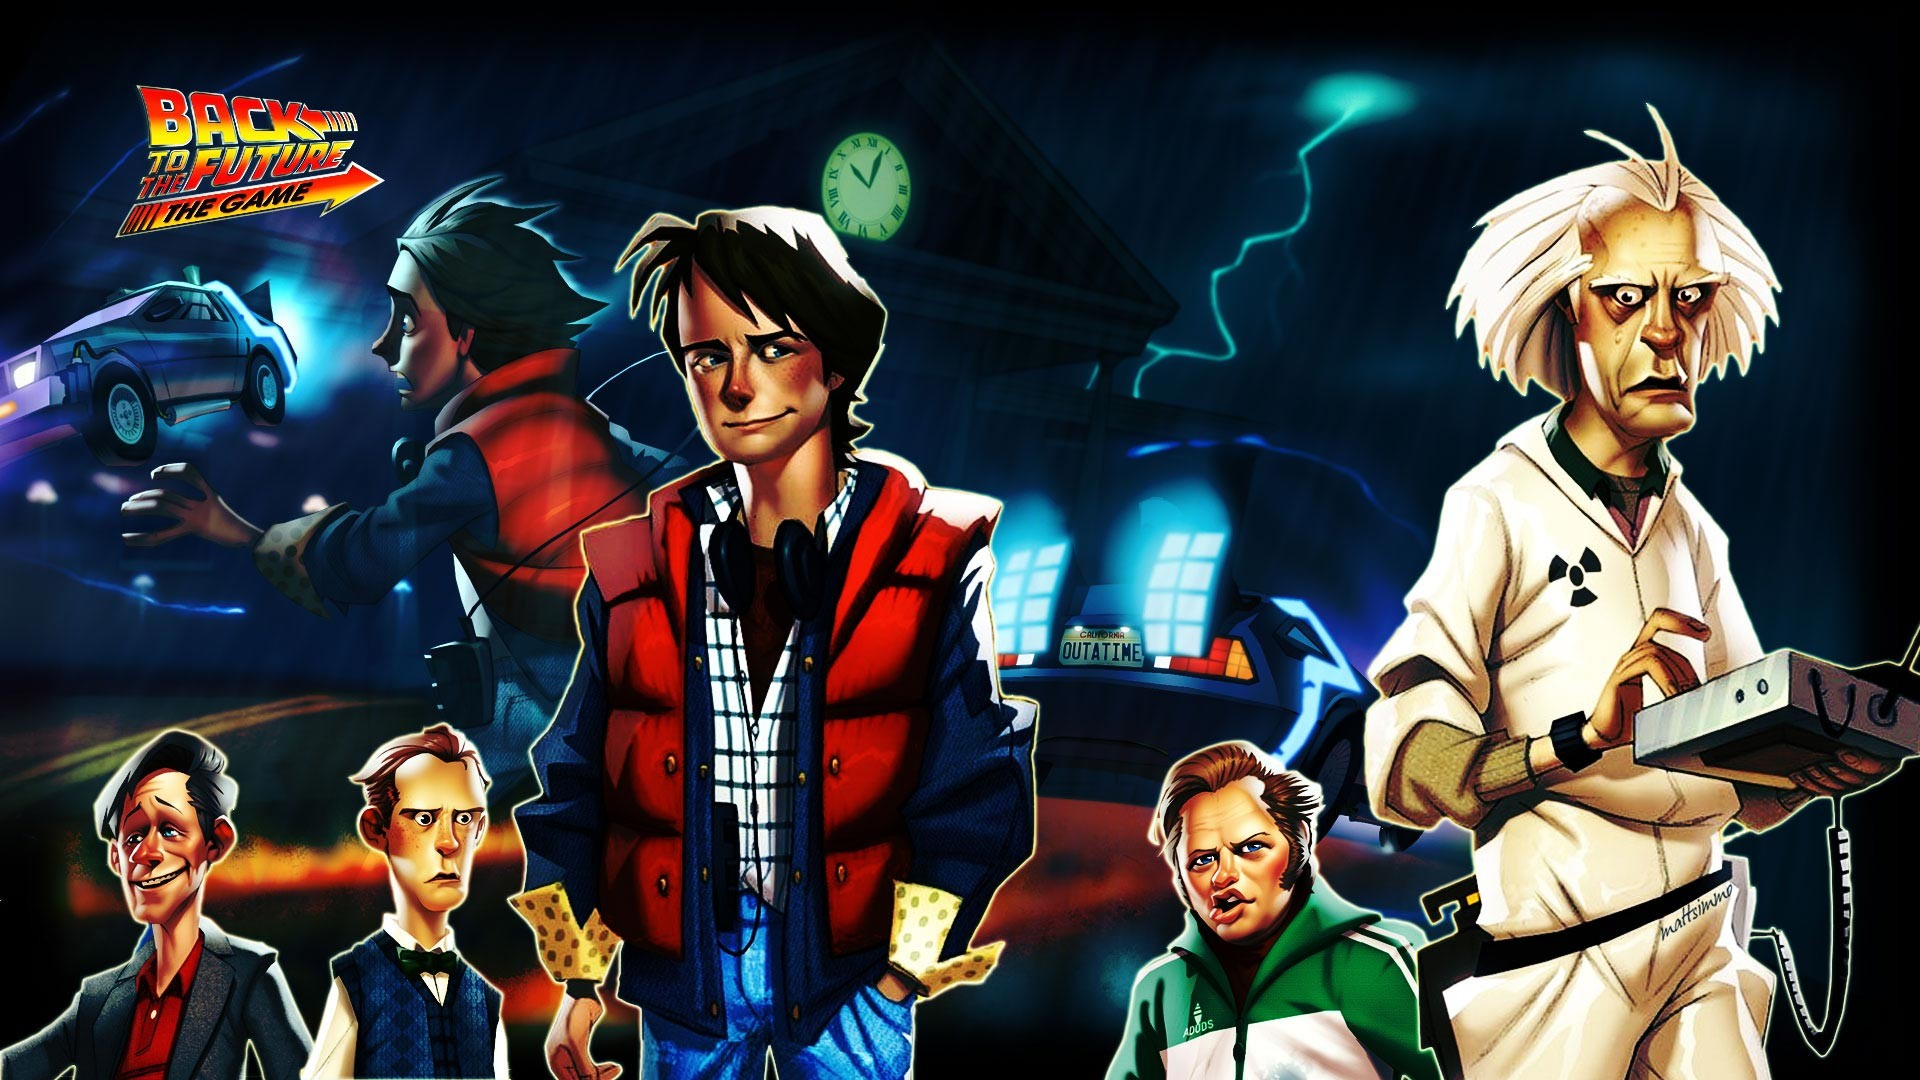 Wallpaper back to the future the game, telltale games, pc, ipad,